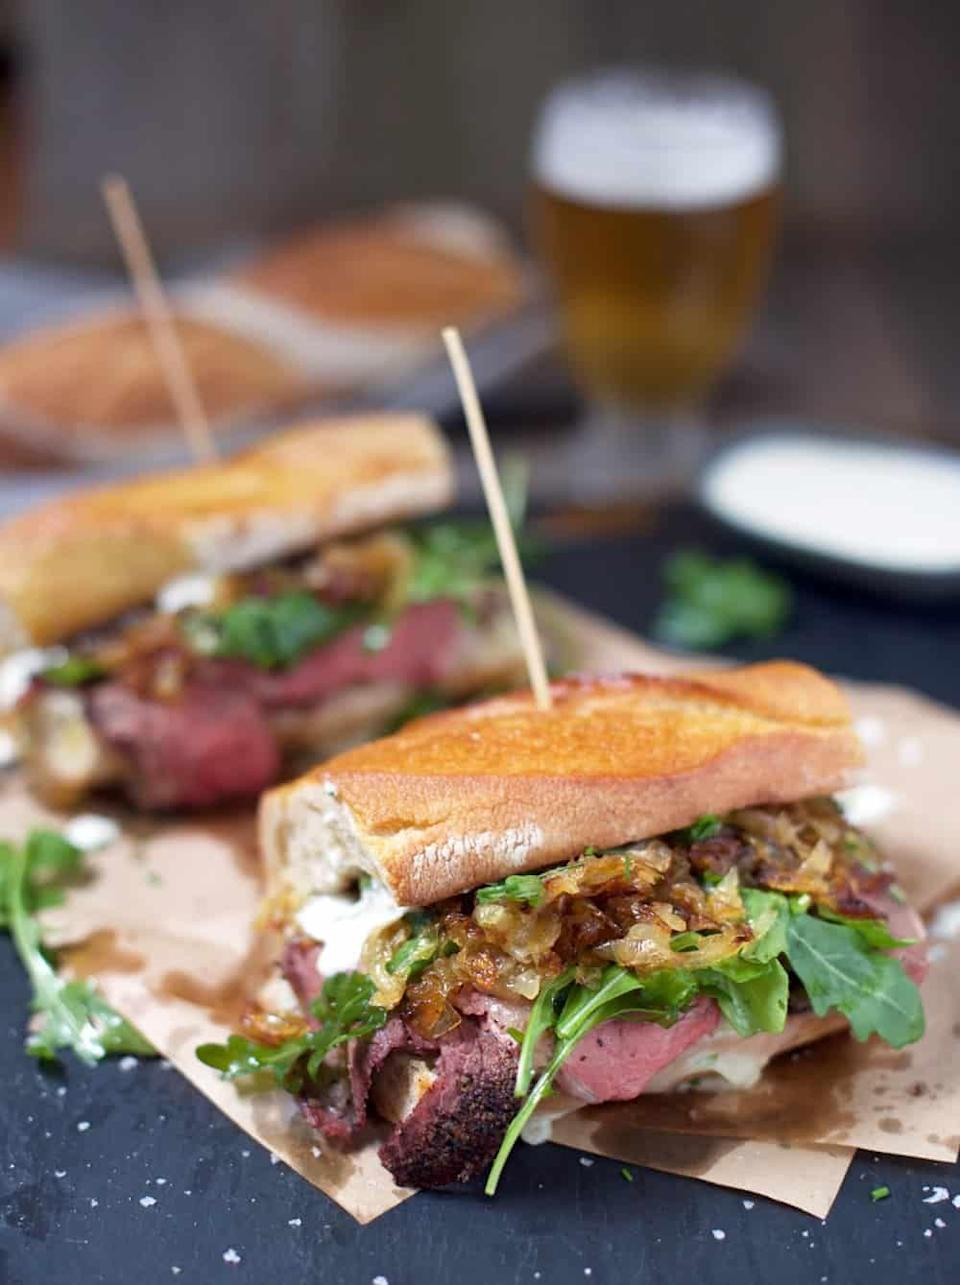 """<p>Do you serve your prime rib with a horseradish cream sauce? You can also re-use that as the spread for this slammin' sandwich. </p><p>Get the recipe from <a href=""""https://www.vindulge.com/prime-rib-steak-sandwiches/"""" rel=""""nofollow noopener"""" target=""""_blank"""" data-ylk=""""slk:Vindulge"""" class=""""link rapid-noclick-resp"""">Vindulge</a>. </p>"""